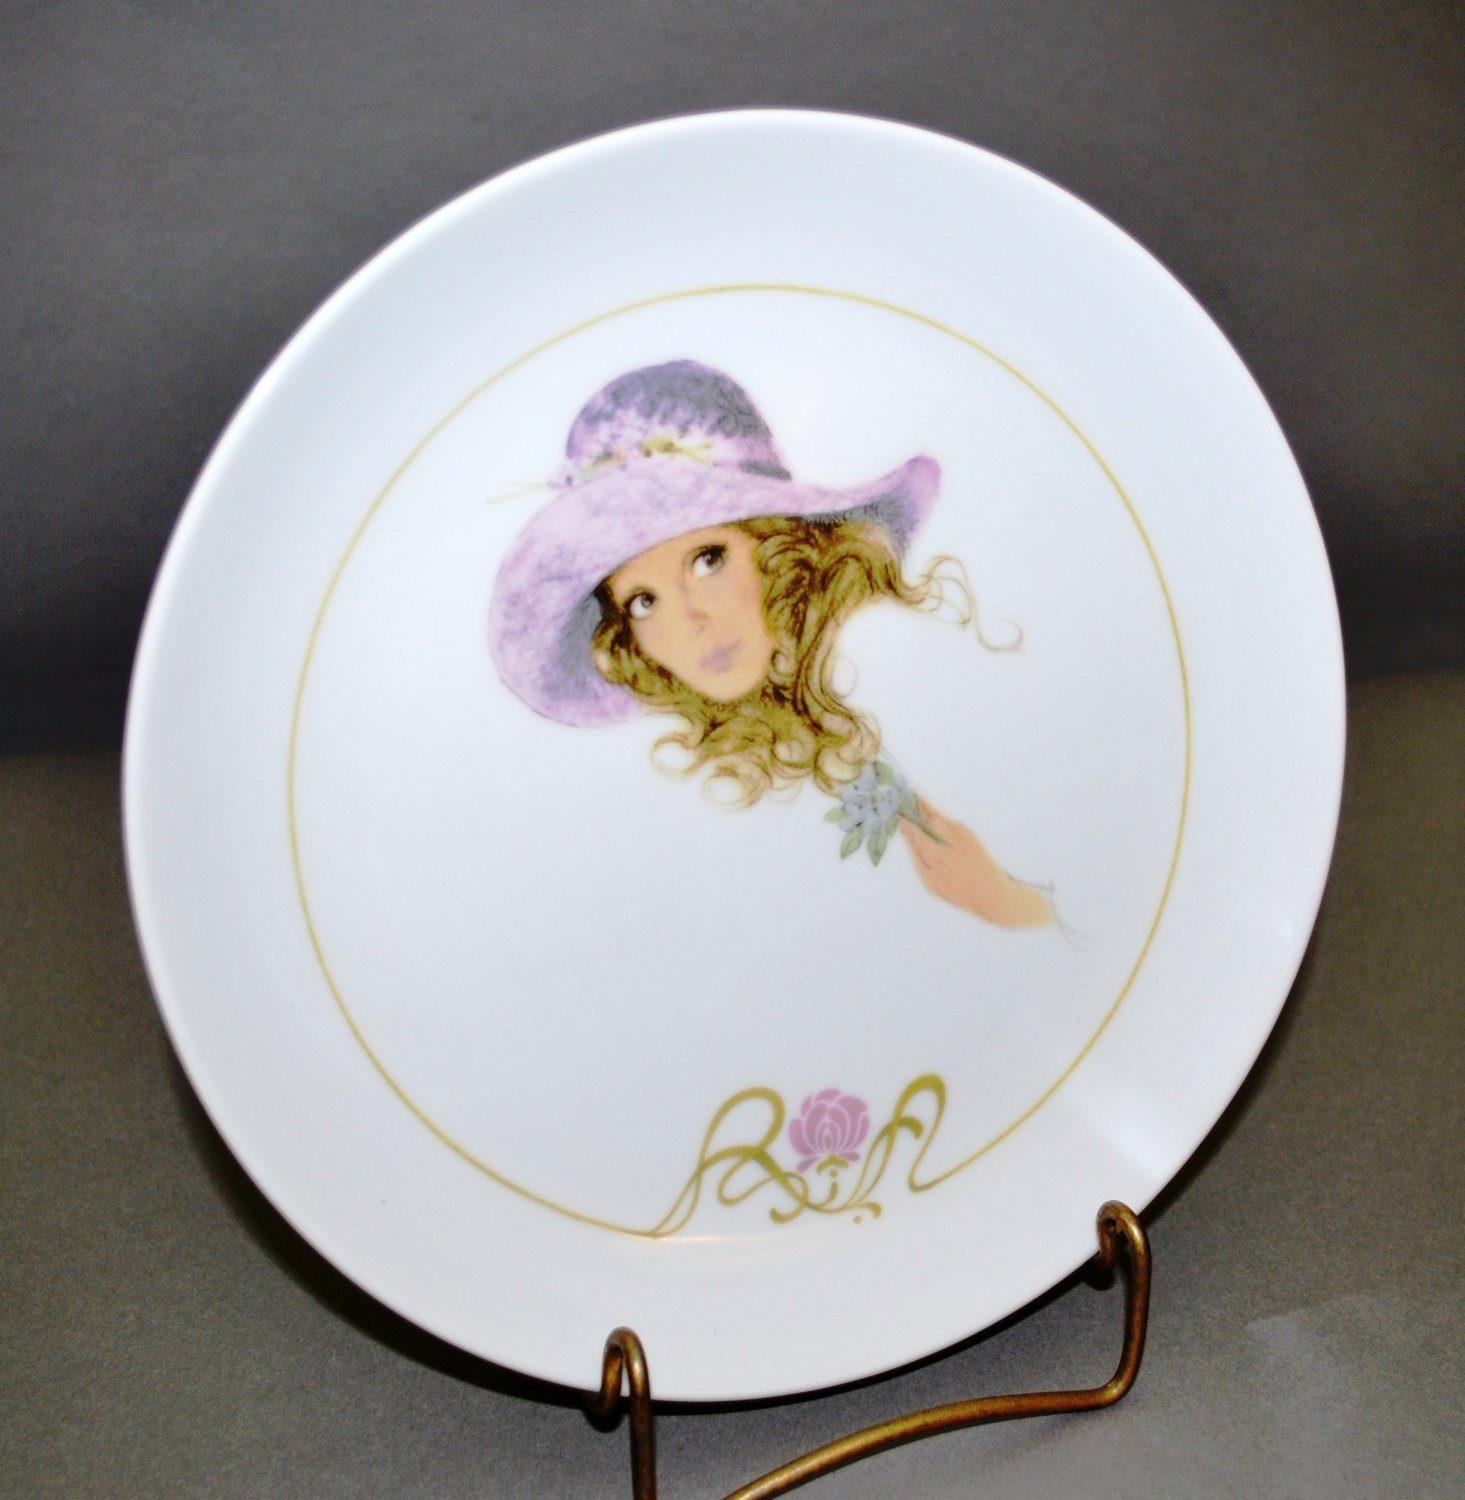 Enesco Young Girl White Porcelain Collector Plate with Lavender Hat Flower